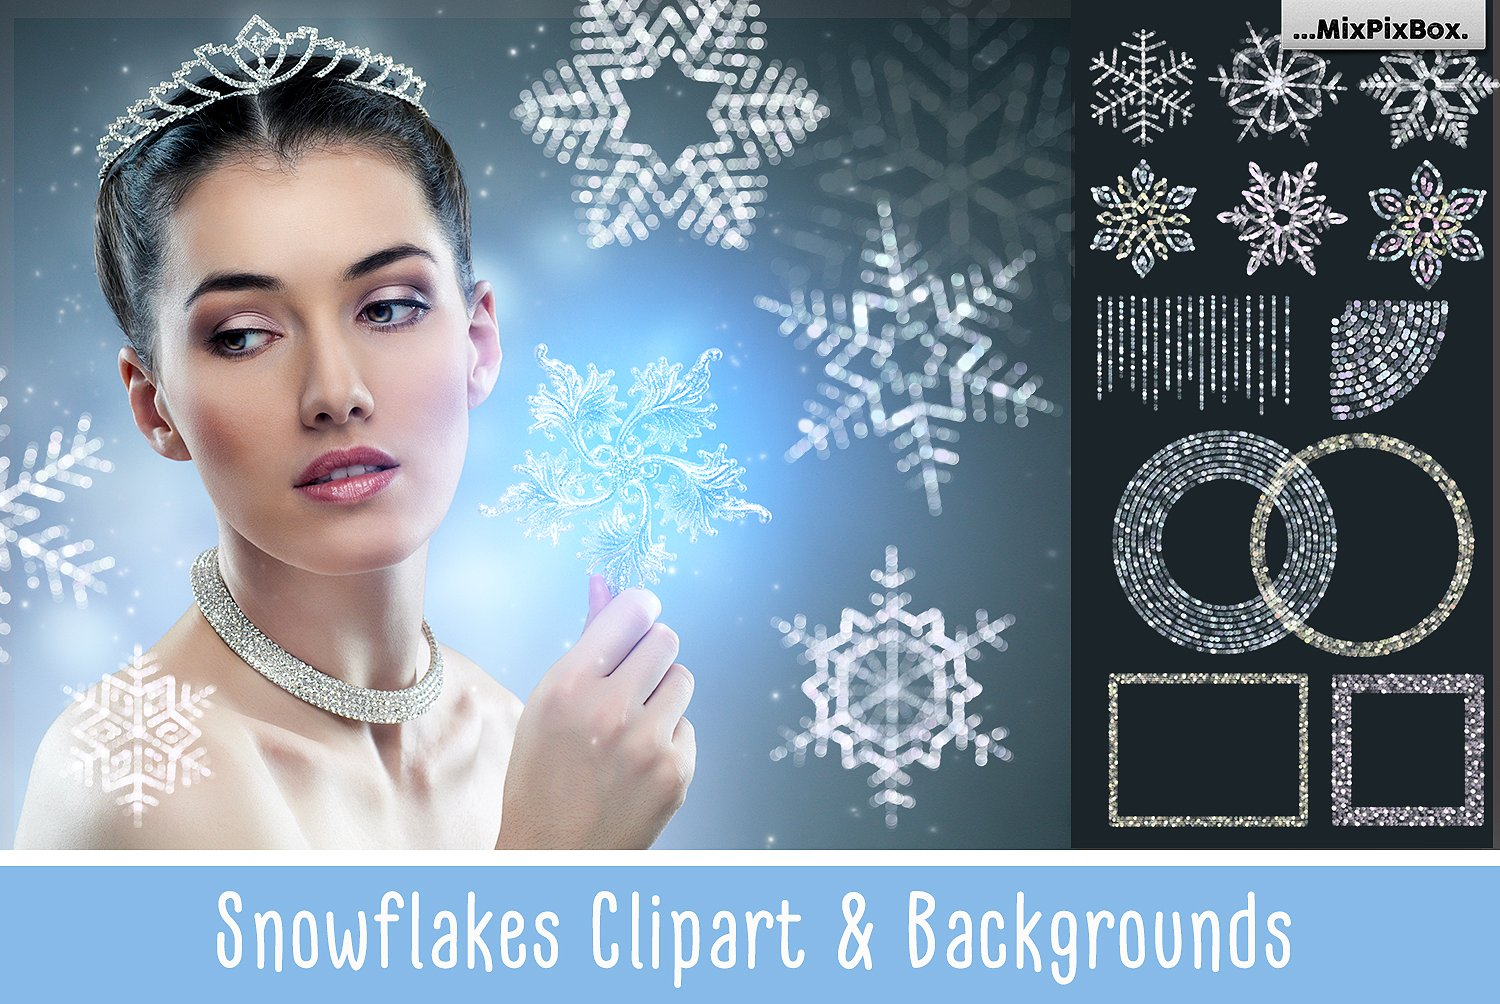 28 Snowflakes Photo Overlays - $8 - cover 6